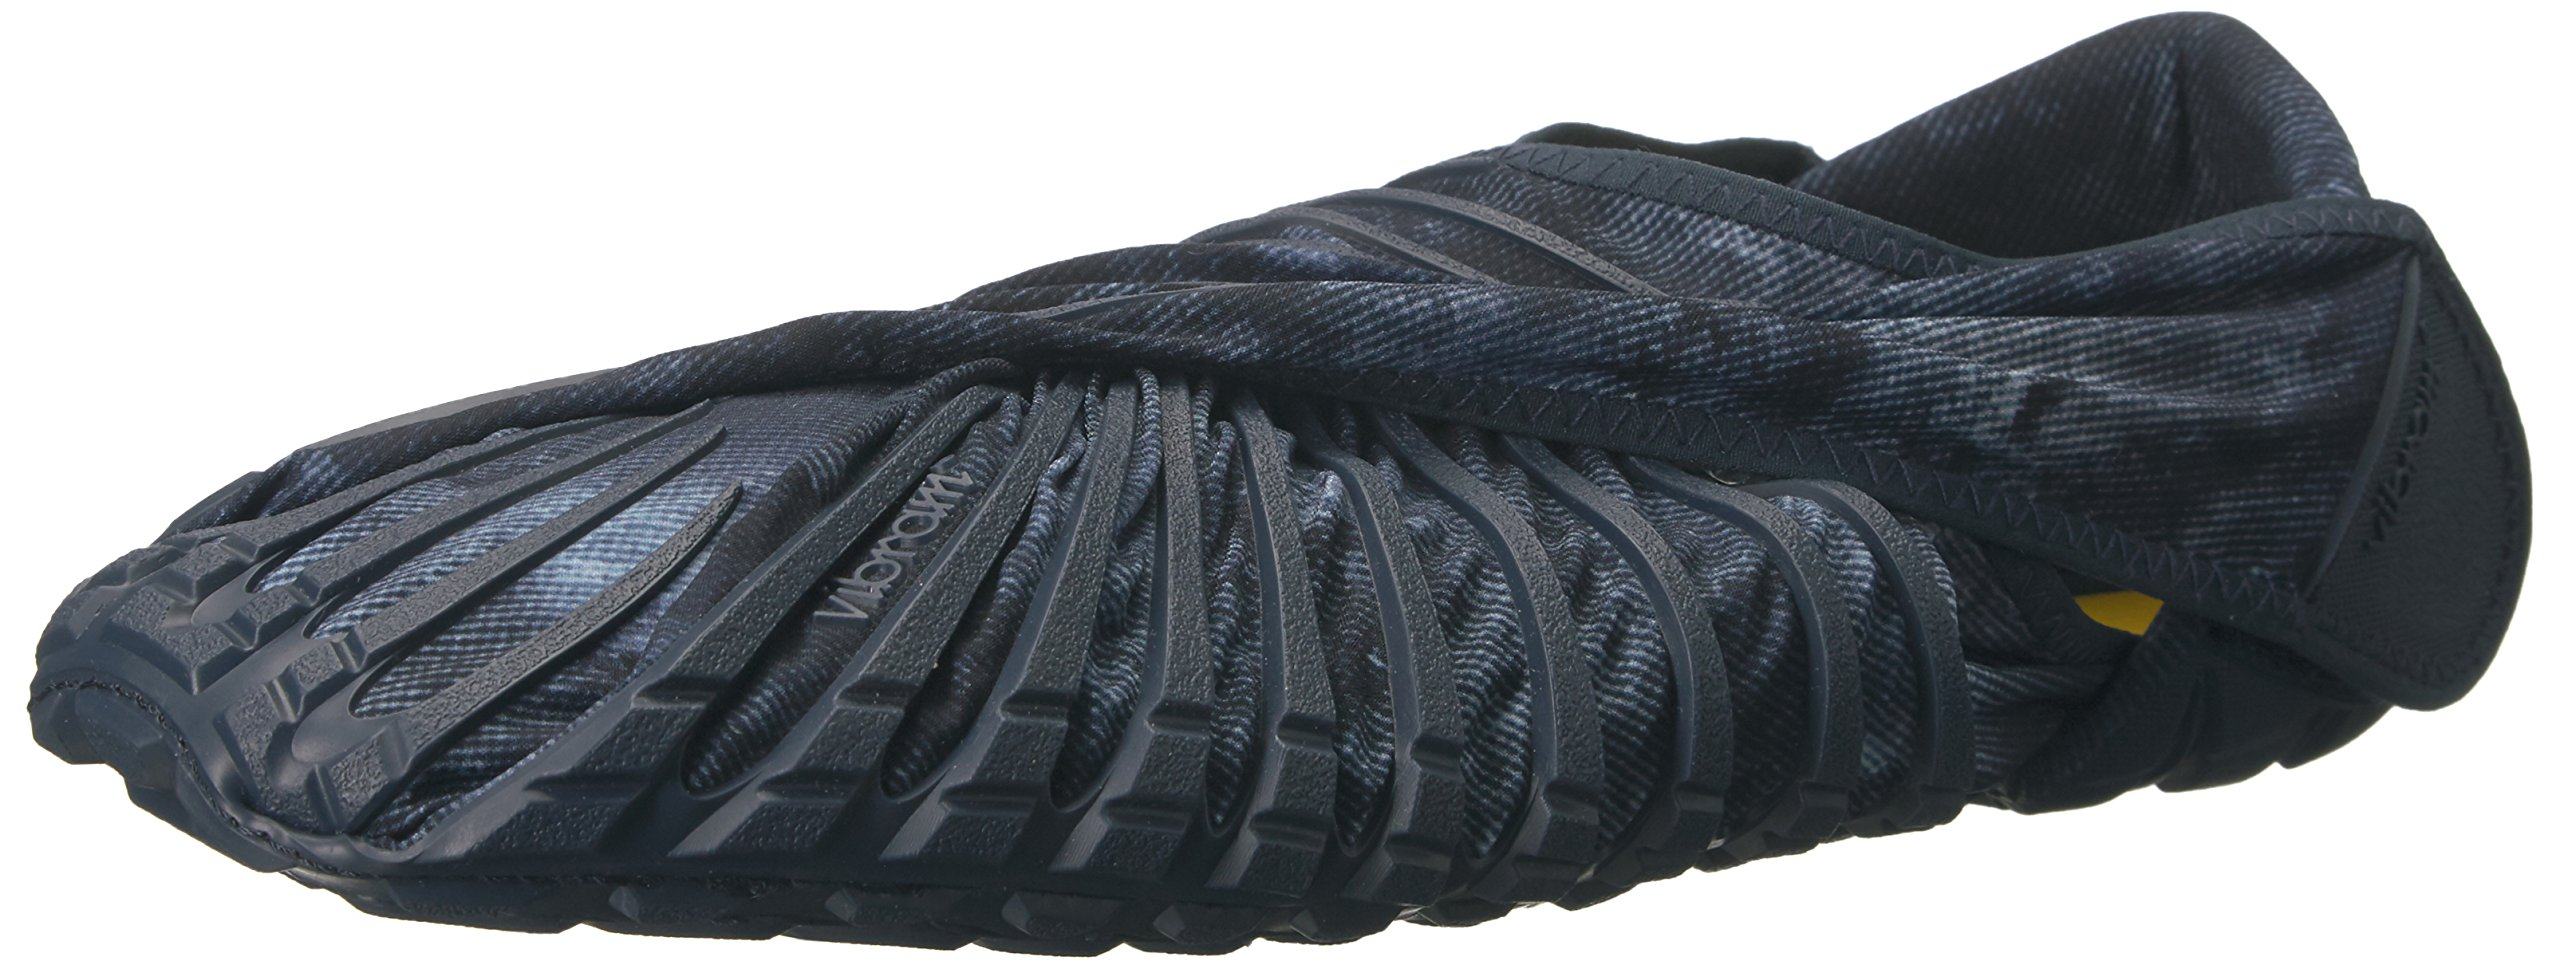 Vibram Men's and Women's Furoshiki Murble Sneaker, Faded Indigo, EU:46-47/UK MAN:11-12/cm:29.5-30.5/US MAN:12-13